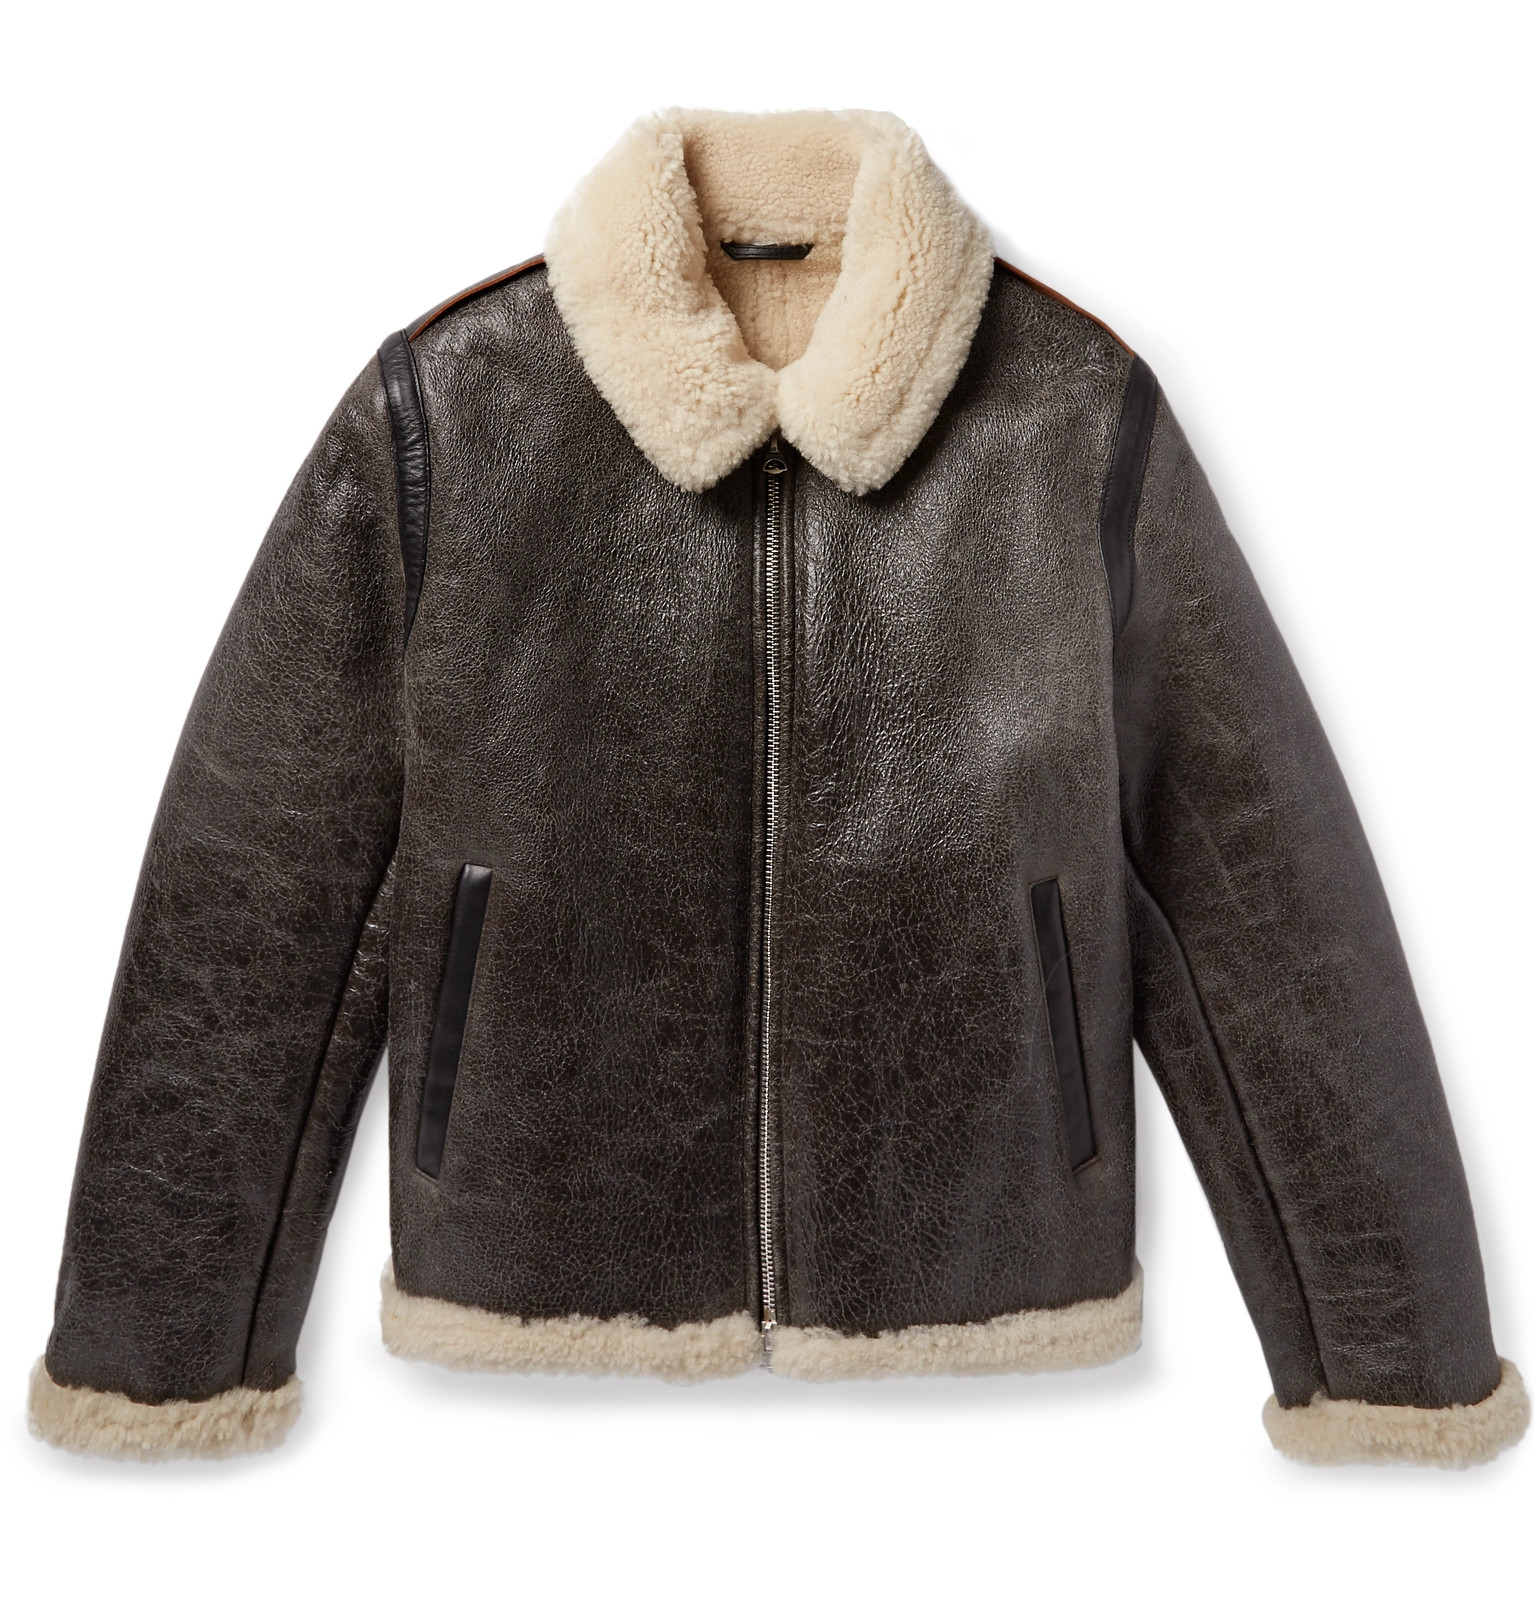 Studios Acne Lined Shearling Leather Jacket Textured TYUUS1qB